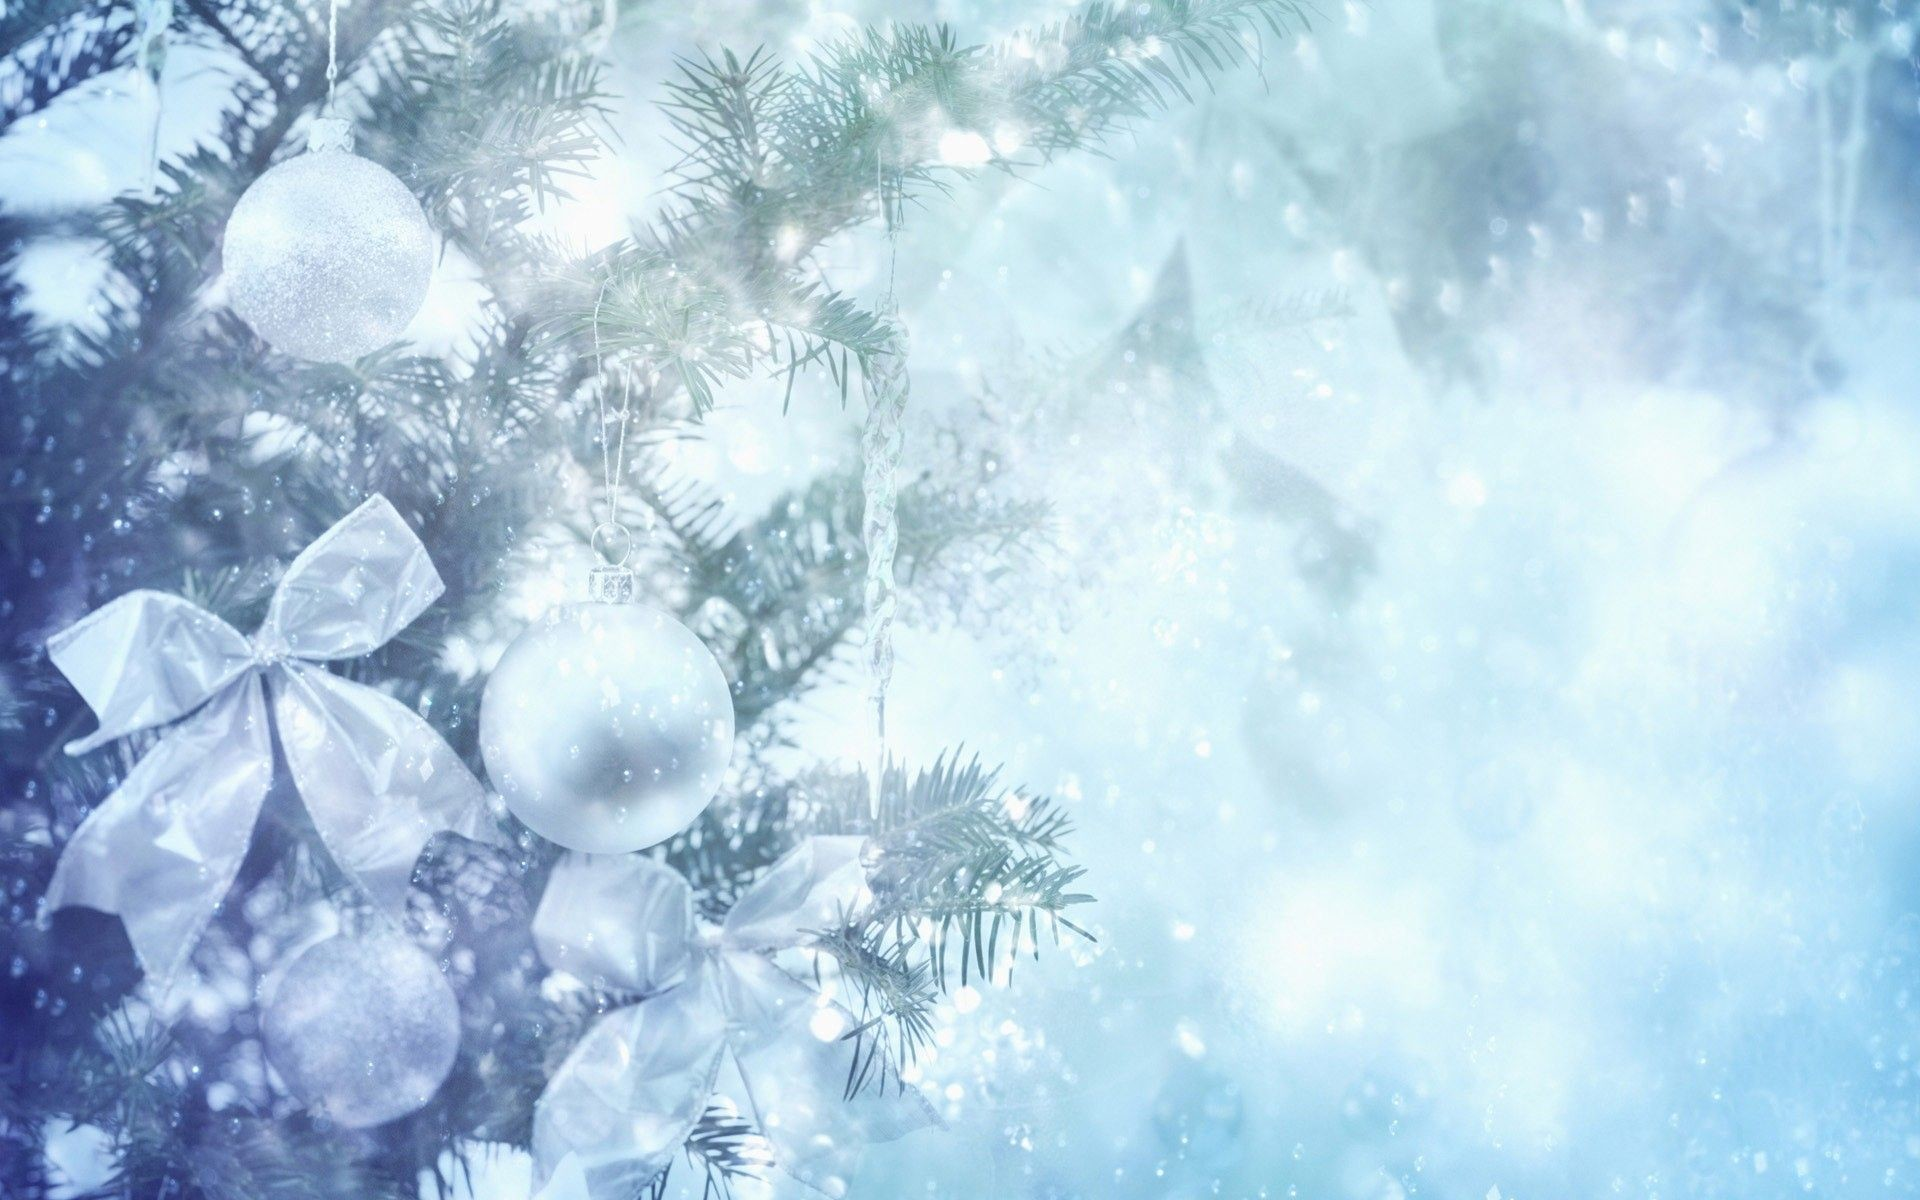 Christmas Wall Paper.White Christmas Wallpaper 74 Images